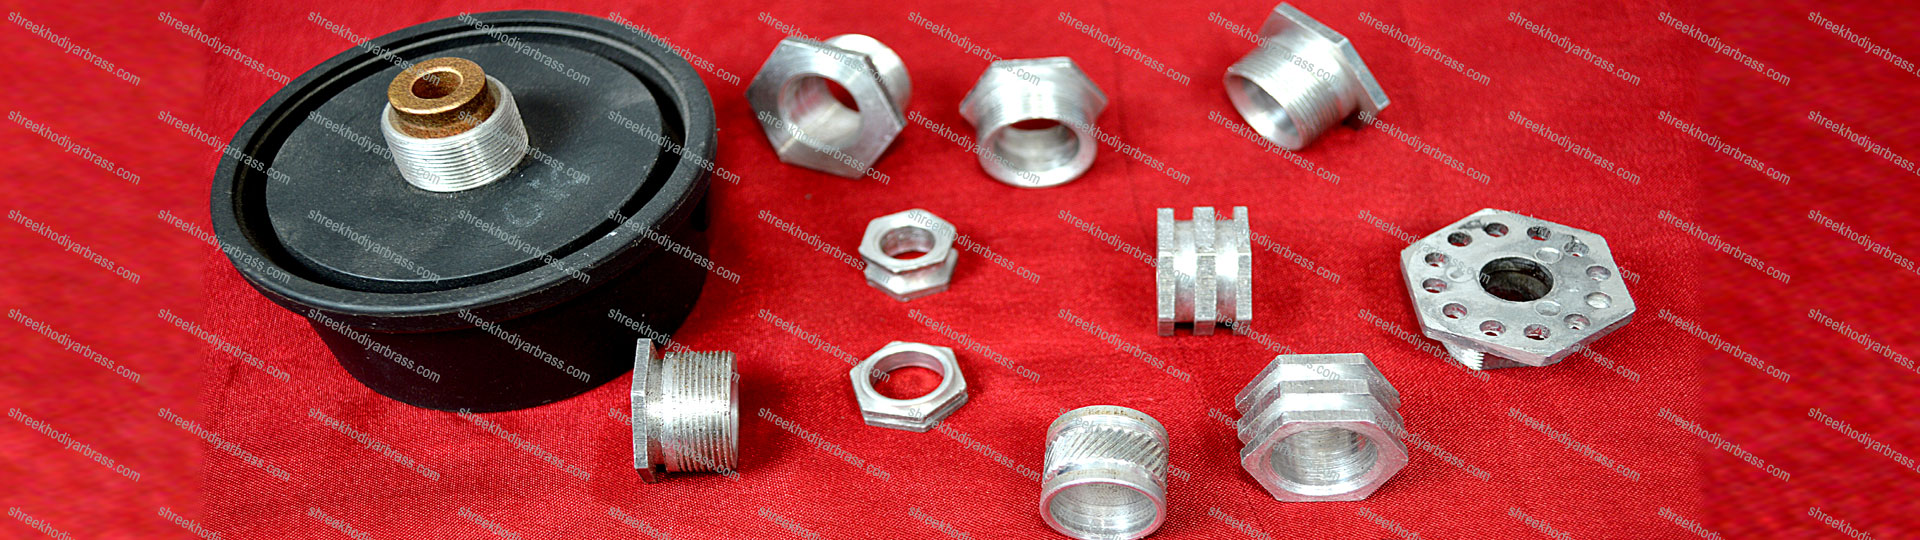 Aluminium Brass Mixer Grinder Parts Aluminium Hex Nut, Aluminium Square Nut, Aluminium Bend Ferrule, Aluminium Sensor Nut and Part